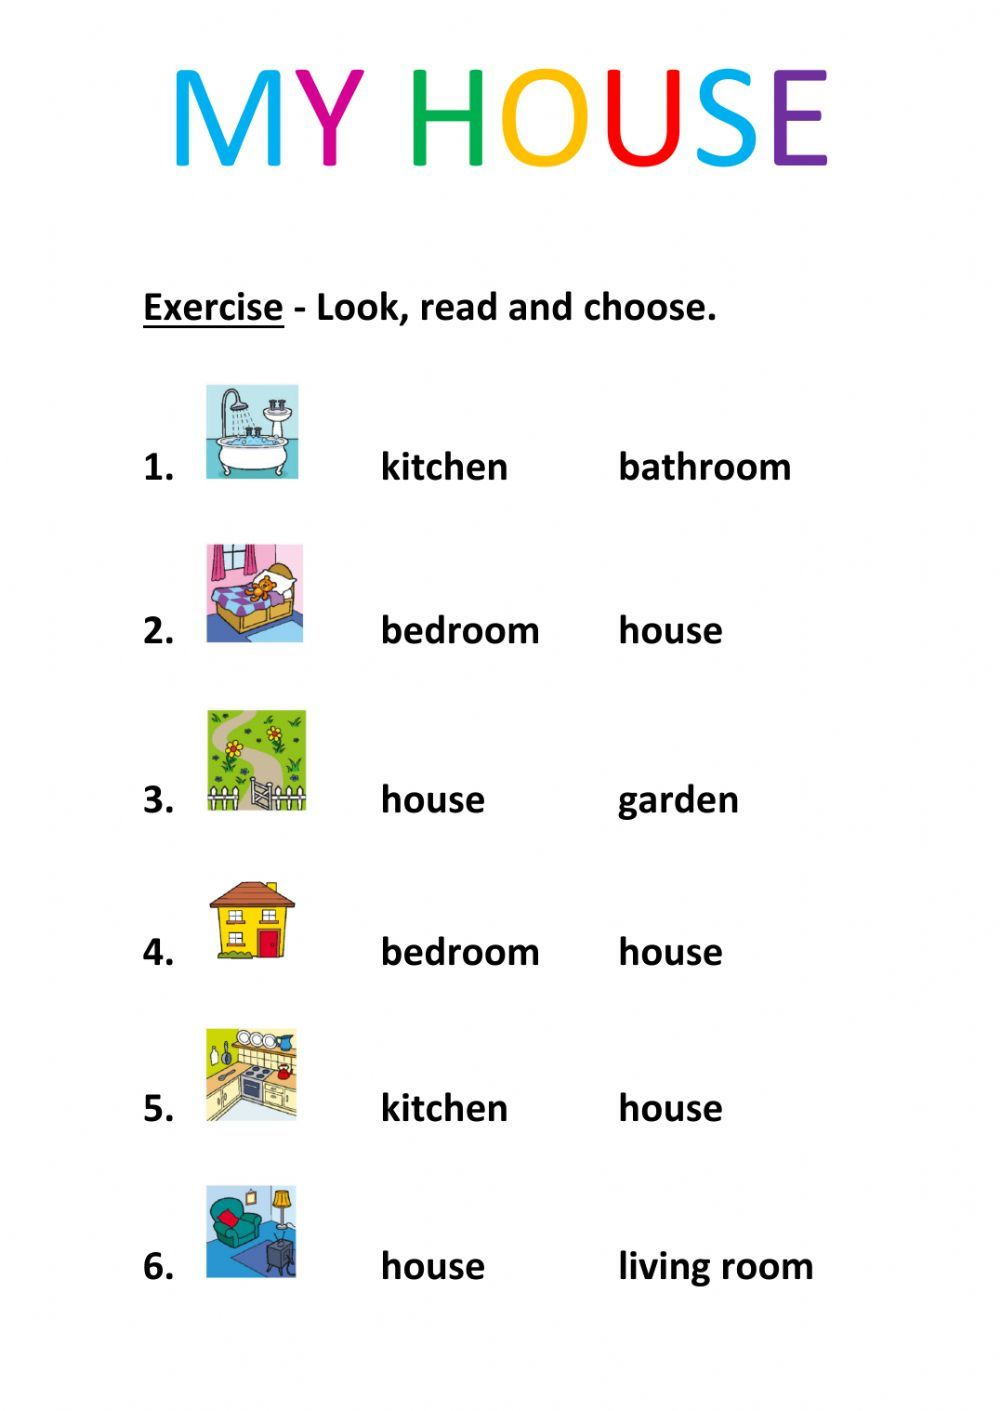 Rooms in the house interactive and downloadable worksheet. Check ...